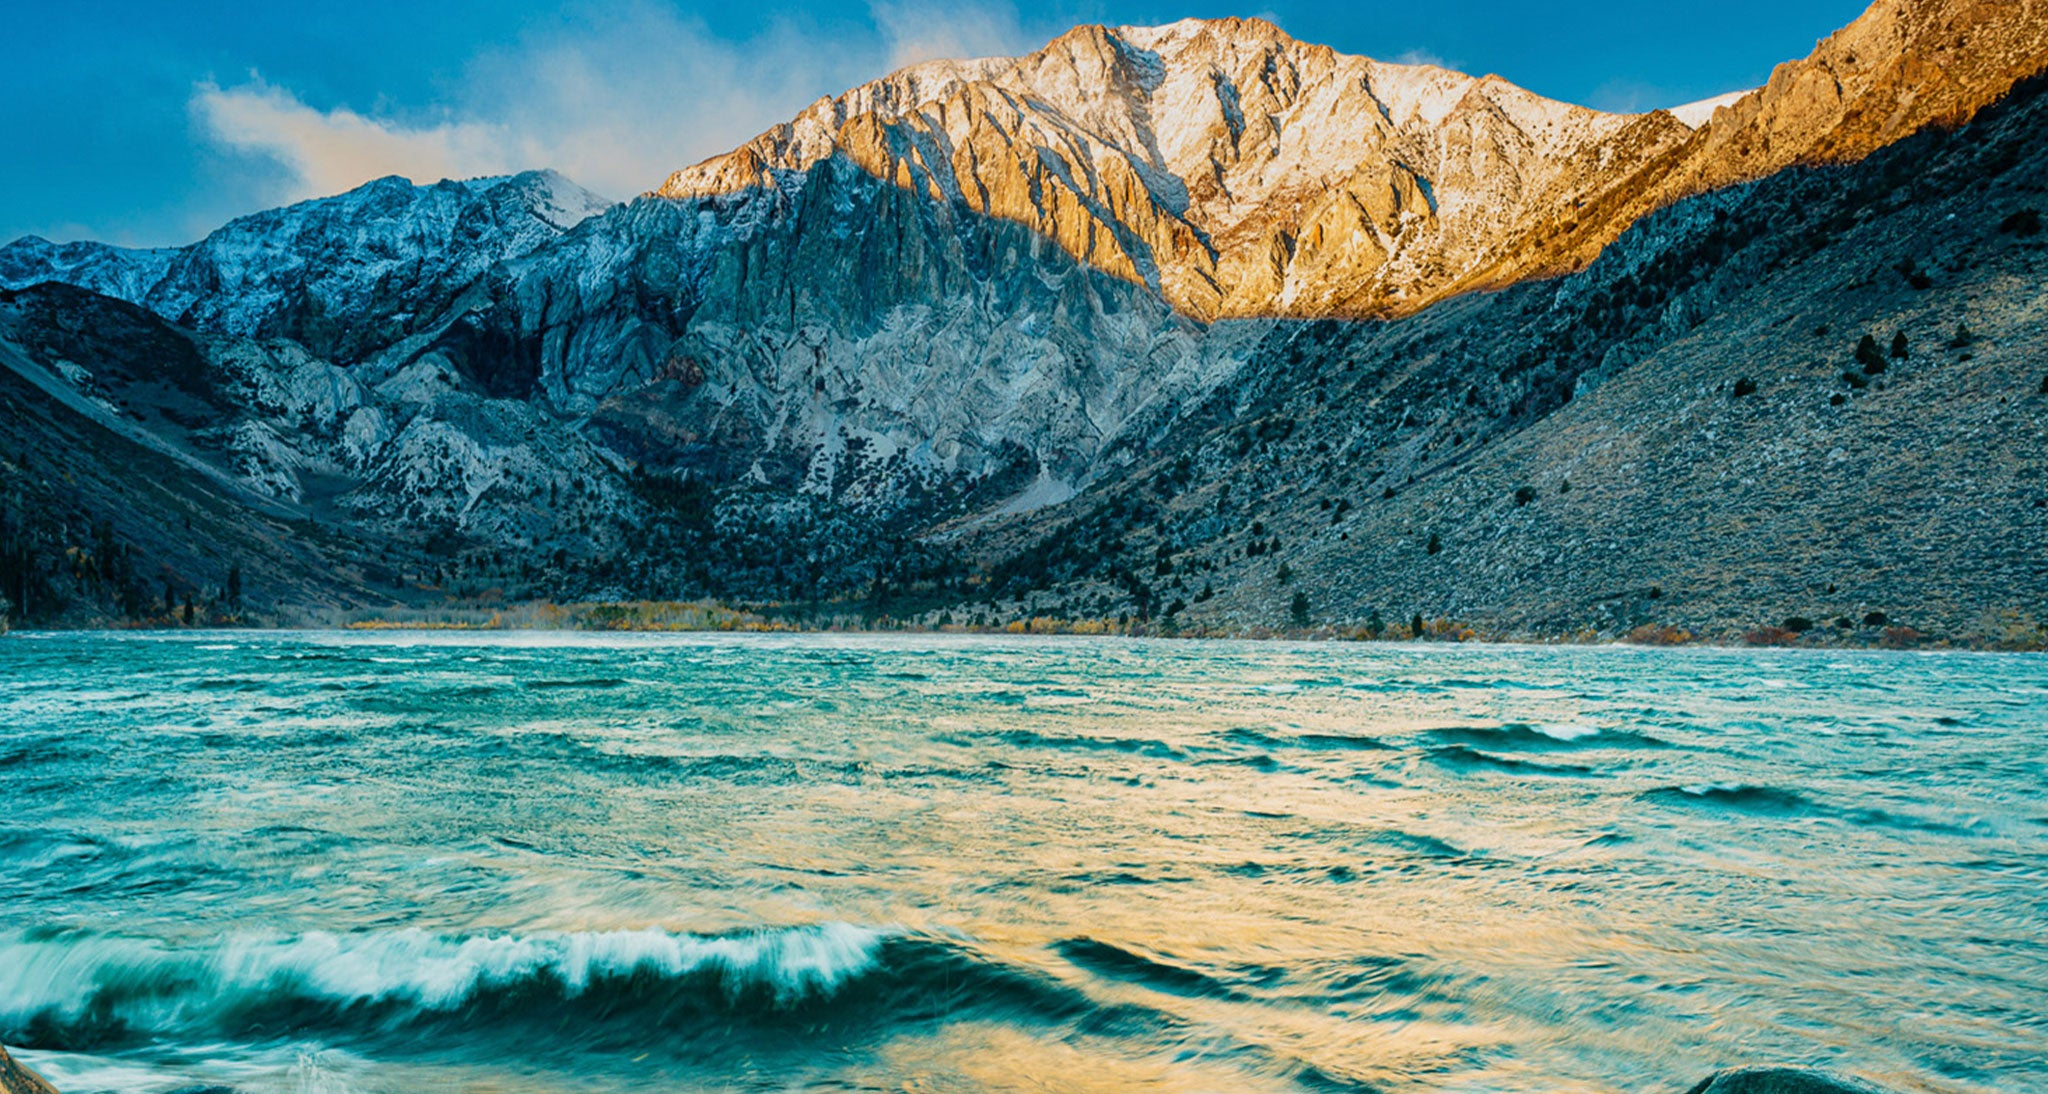 A stiff west wind at sunrise blows across Convict Lake in the Eastern Sierra, CA.  This is a downslopping wind.  Strong winds blowing across a mountain range flow downward on the lee side of the range as seen here.  Downsloping winds are drying winds and the western slope of the Sierra which would be on the windward side is probably  experiencing considerable cloud cover and precipitation.  Winds accelerate when they descend and accelerate even more when they blow across a surface with reduced friction such as a lake.  The high Sierra is the most prominent and formidable terrain barrier in the CONUS.  They are the reason why the Owen's Valley in their eastern shadow is a desert.